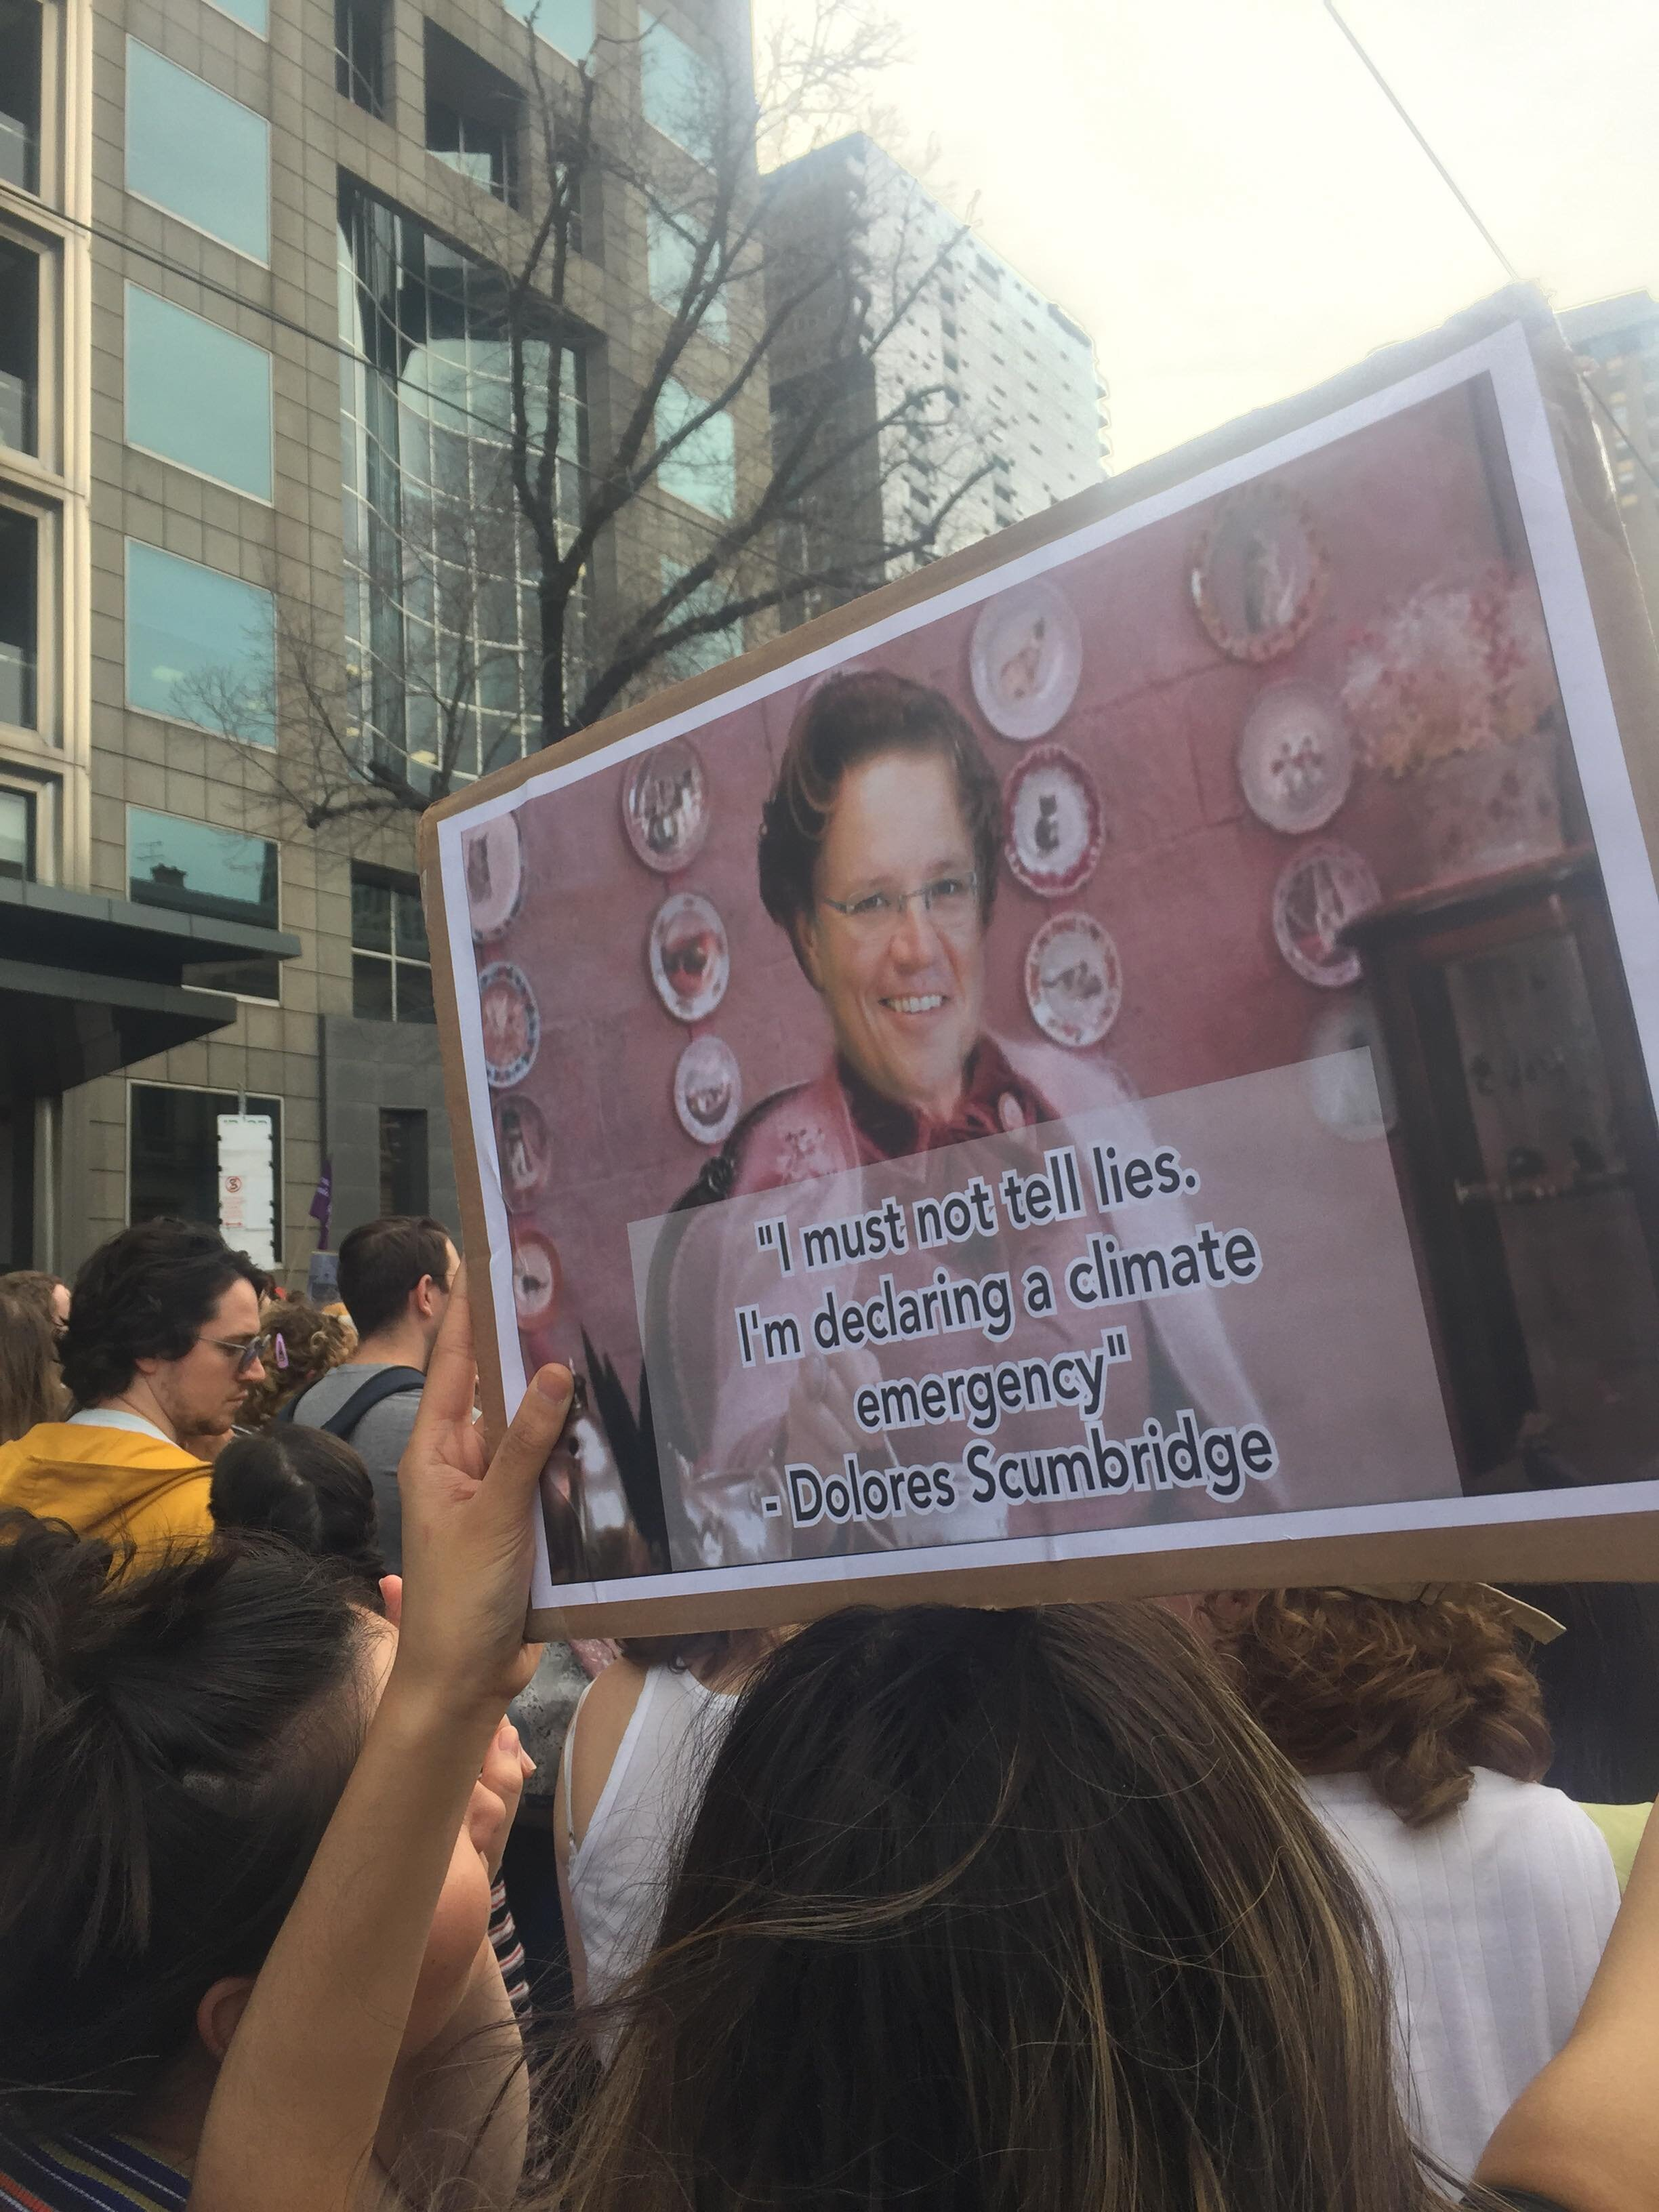 One of the many signs referencing Prime Minister Scott Morrison. Photograph by Nikkola Mikocki-Bleeker